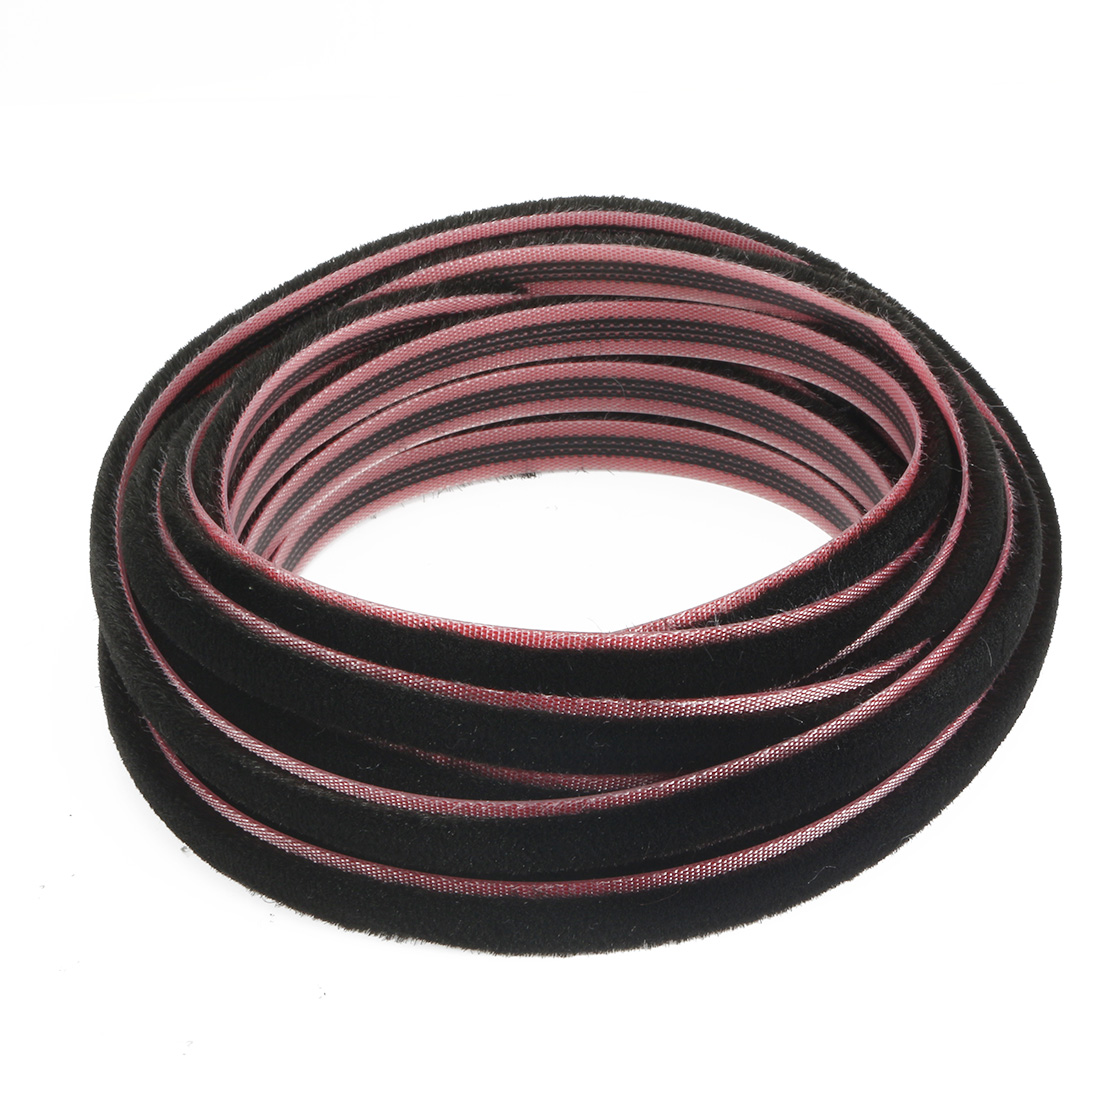 Window Weather Seal Strip 3/8-Inch x 1/4-Inch x 16.4 Feet